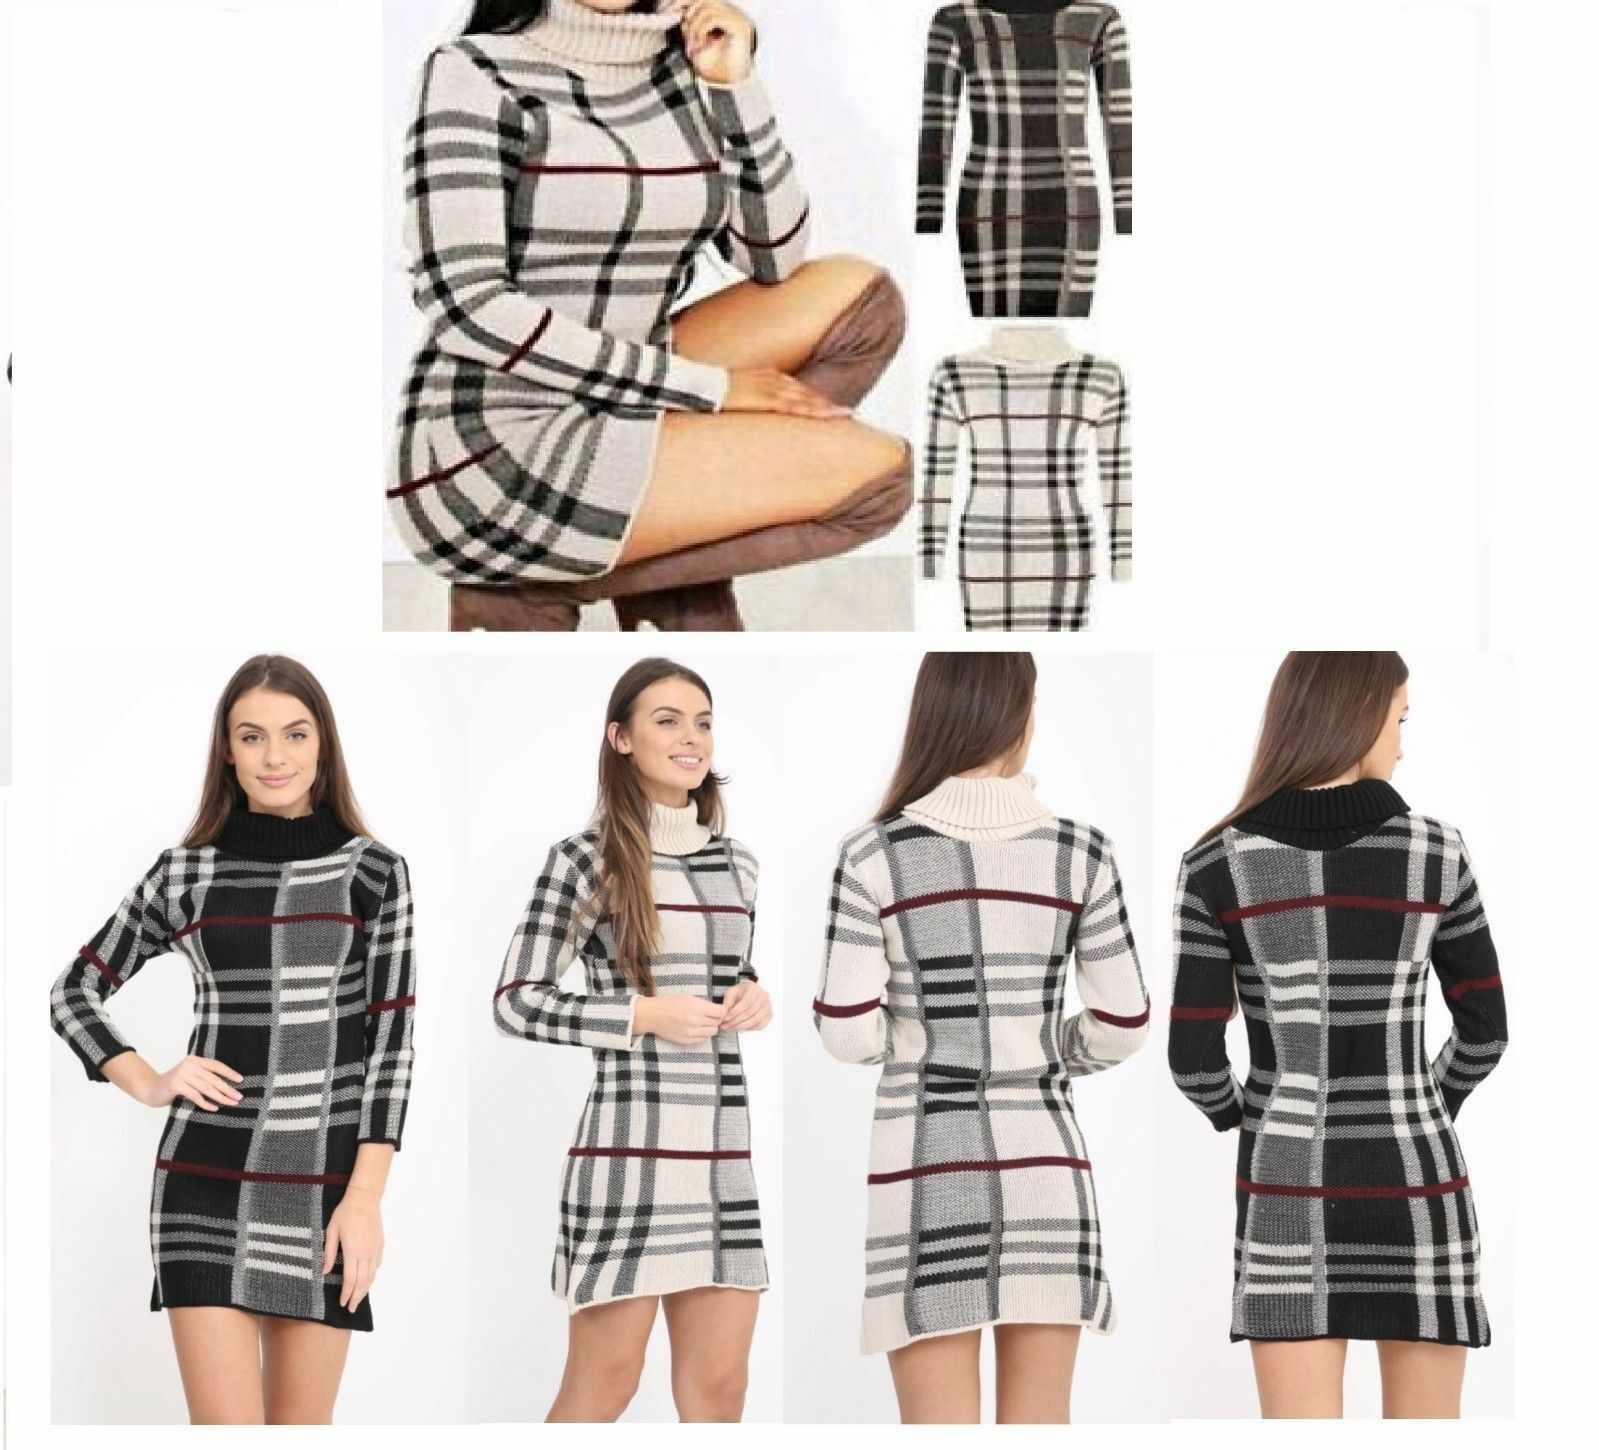 ef8be87c6b87 Details about New Women Ladies Tartan Printed Polo Neck Long Sleeve Knitted  Jumper Dress Top